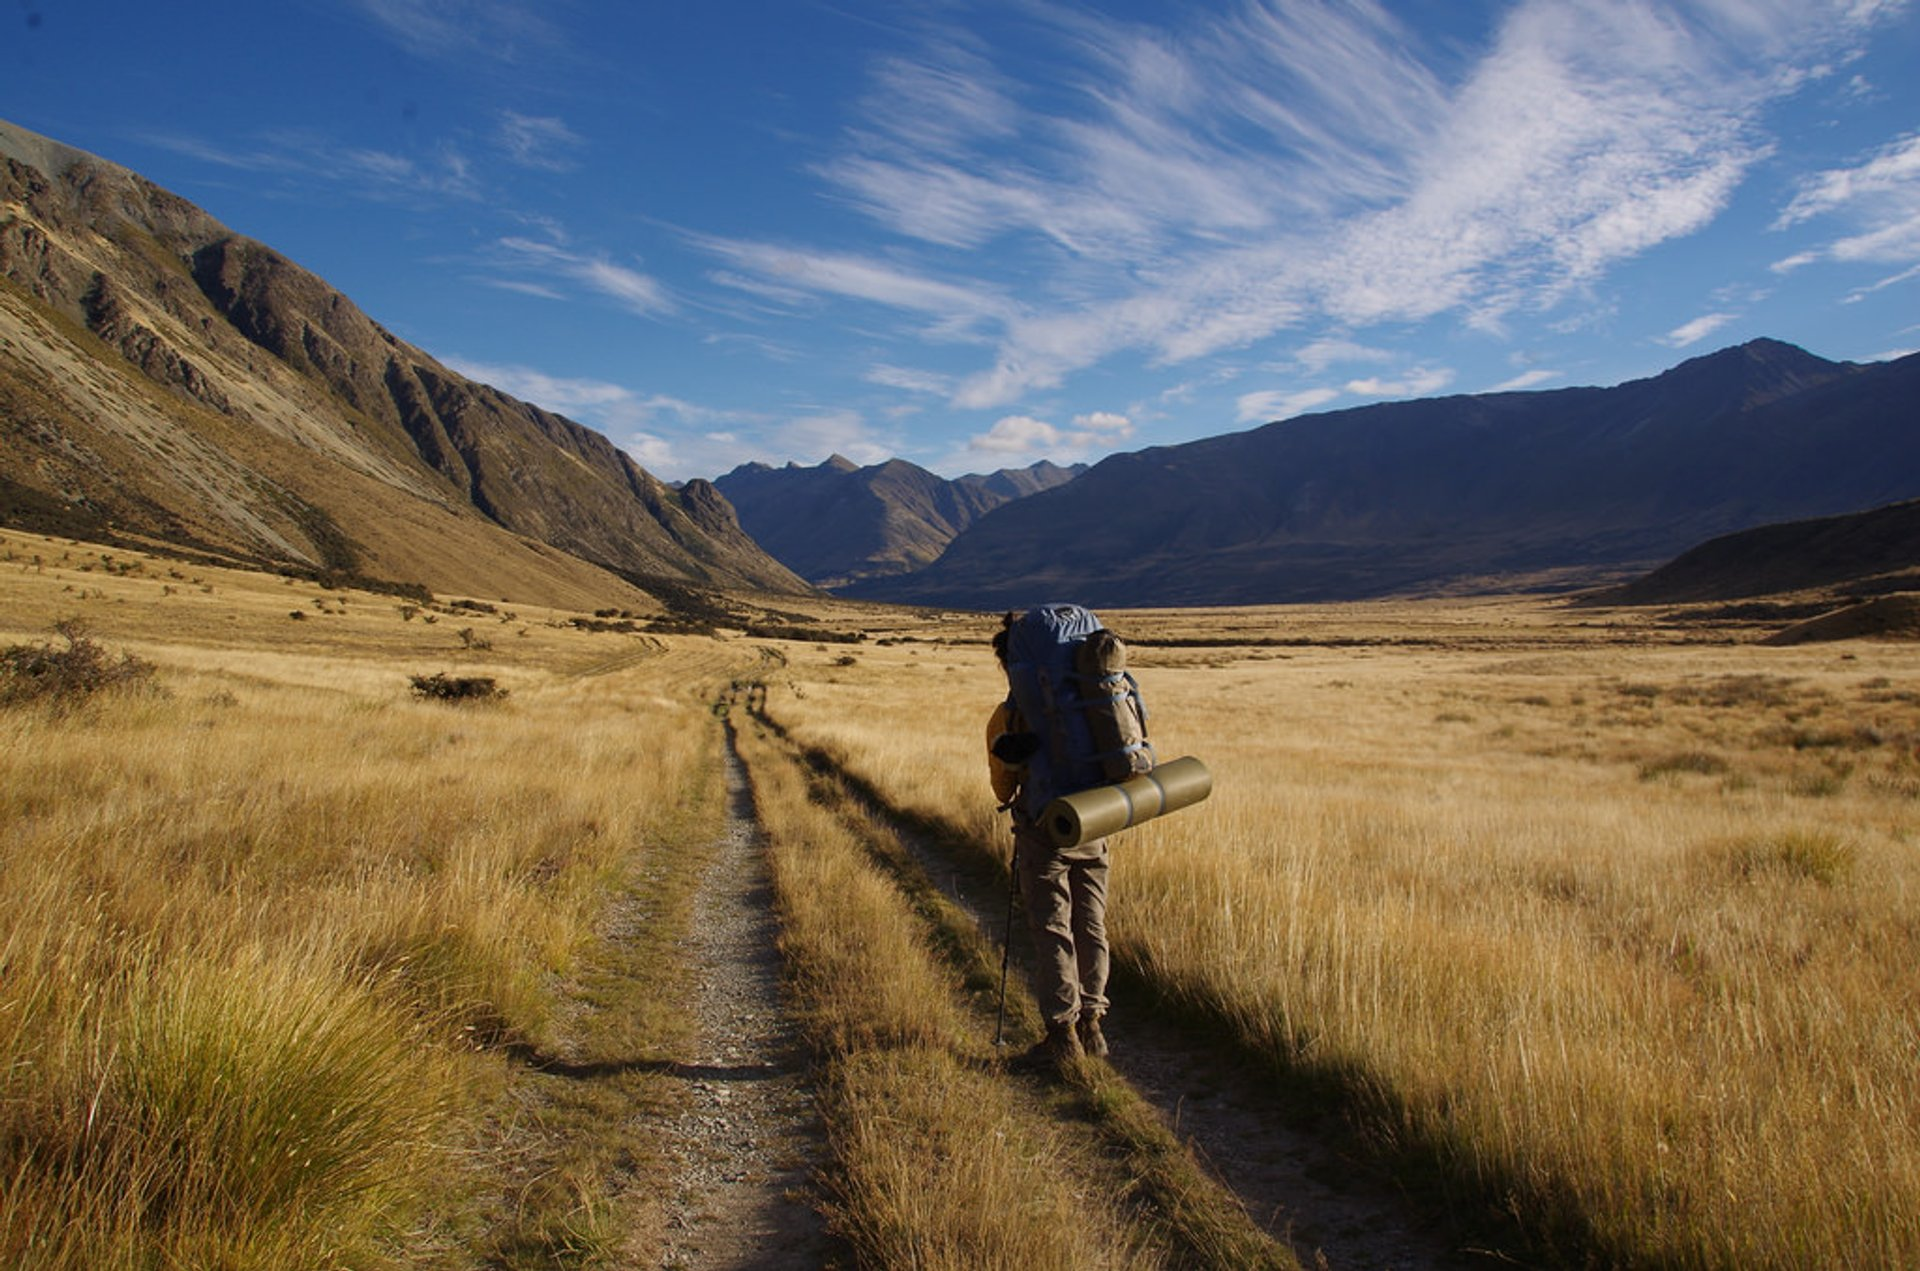 Te Araroa—New Zealand's Trail in New Zealand 2020 - Best Time